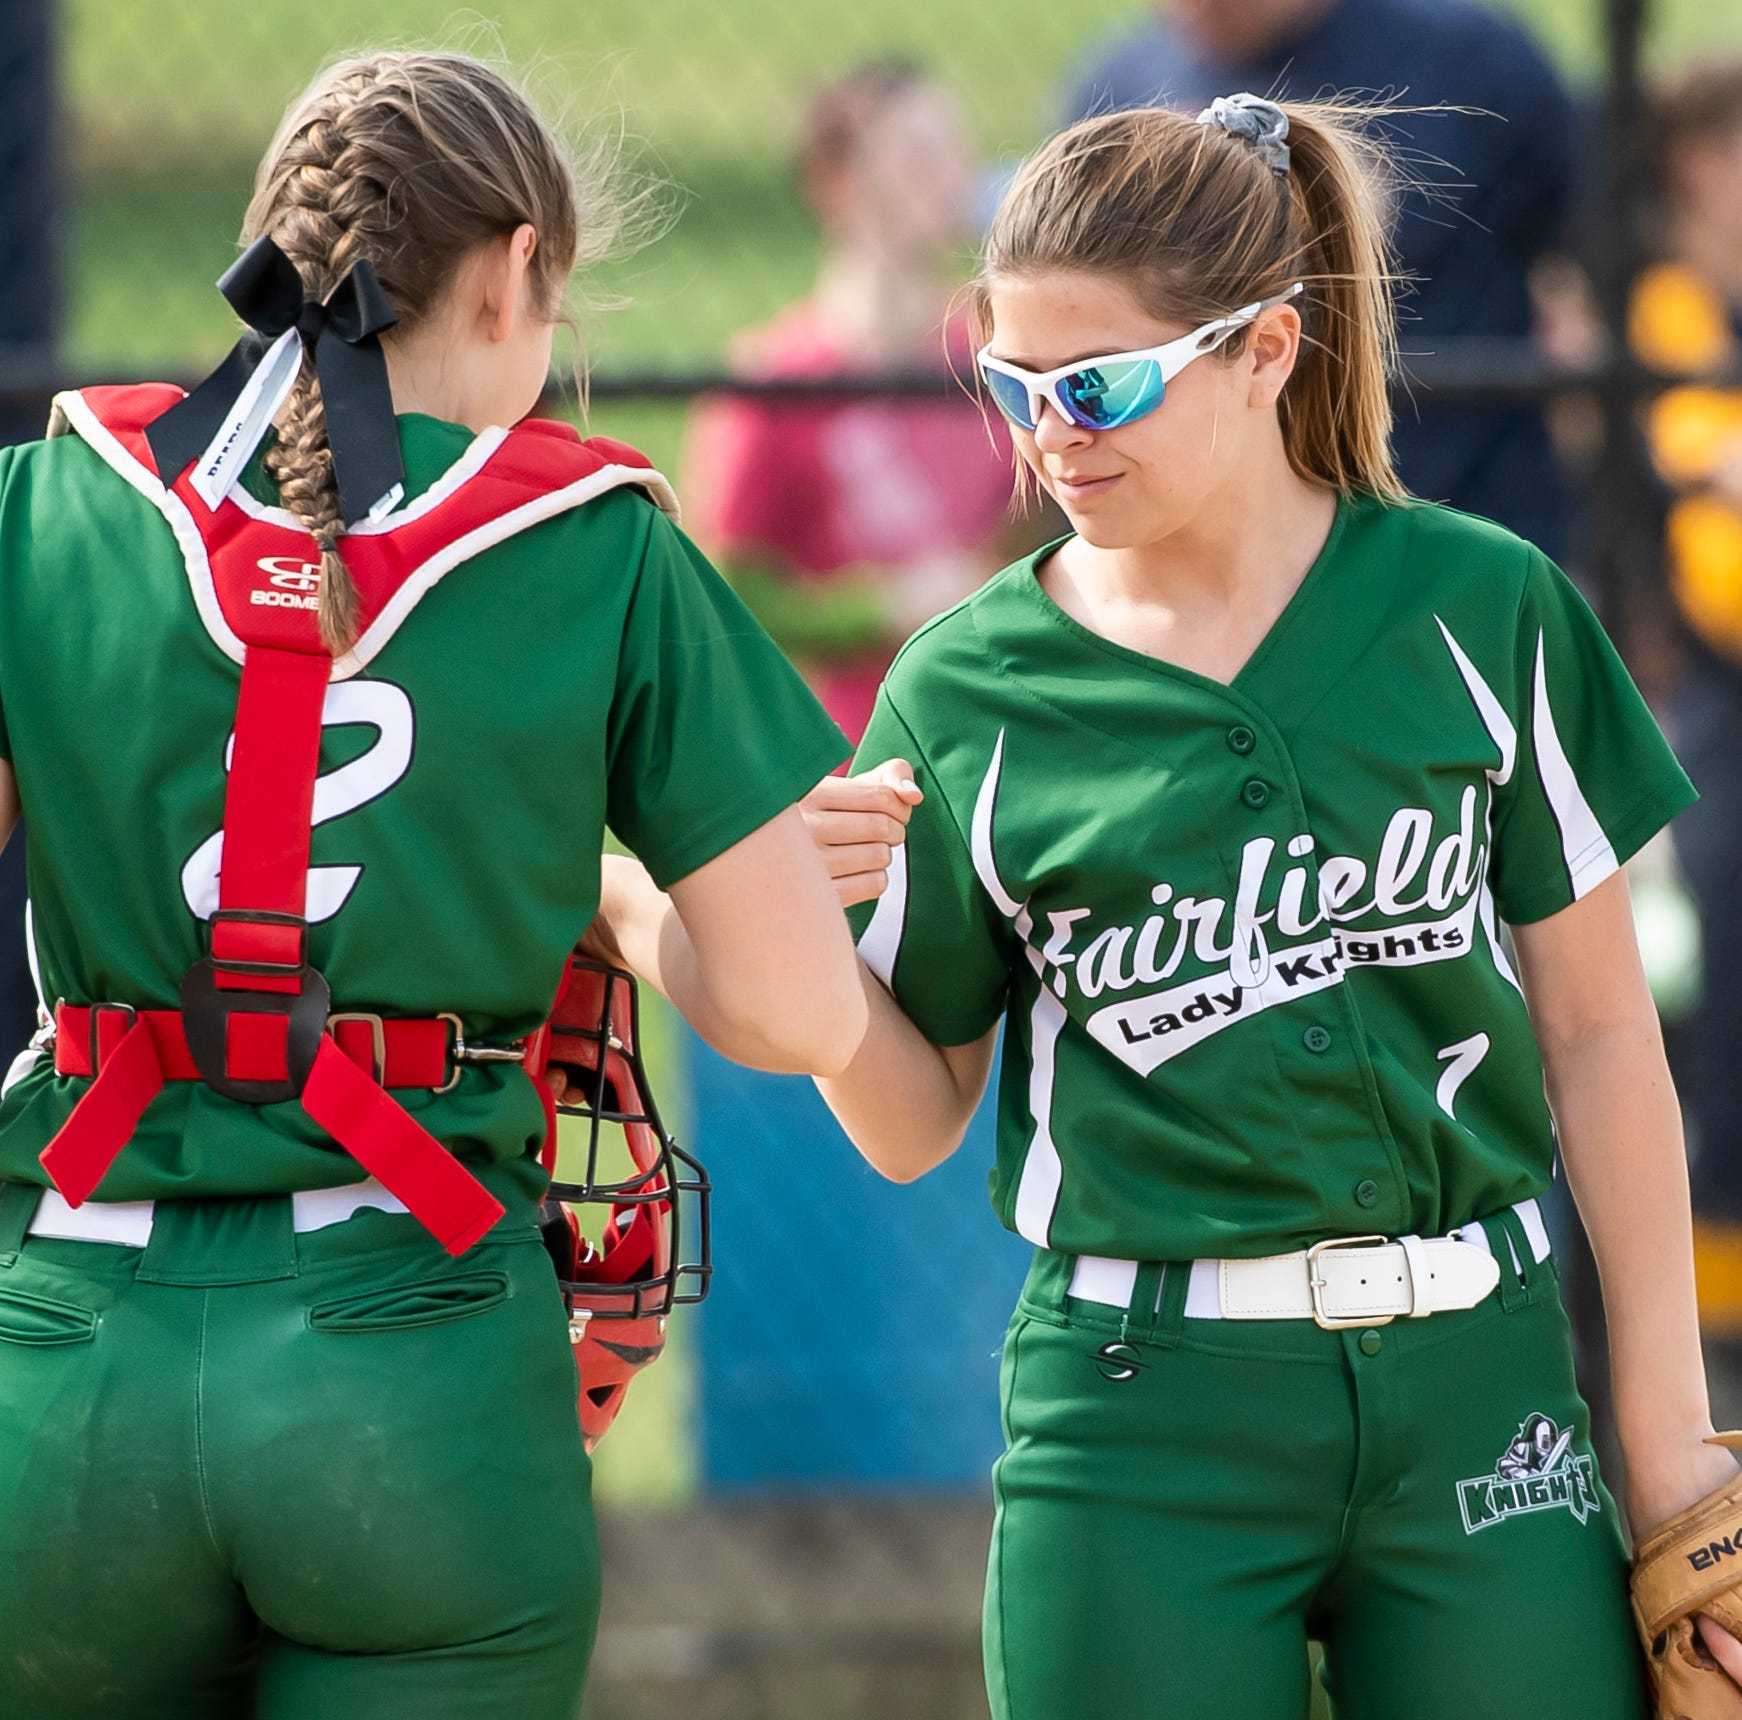 Sister act: Siblings help Fairfield softball unlock full potential